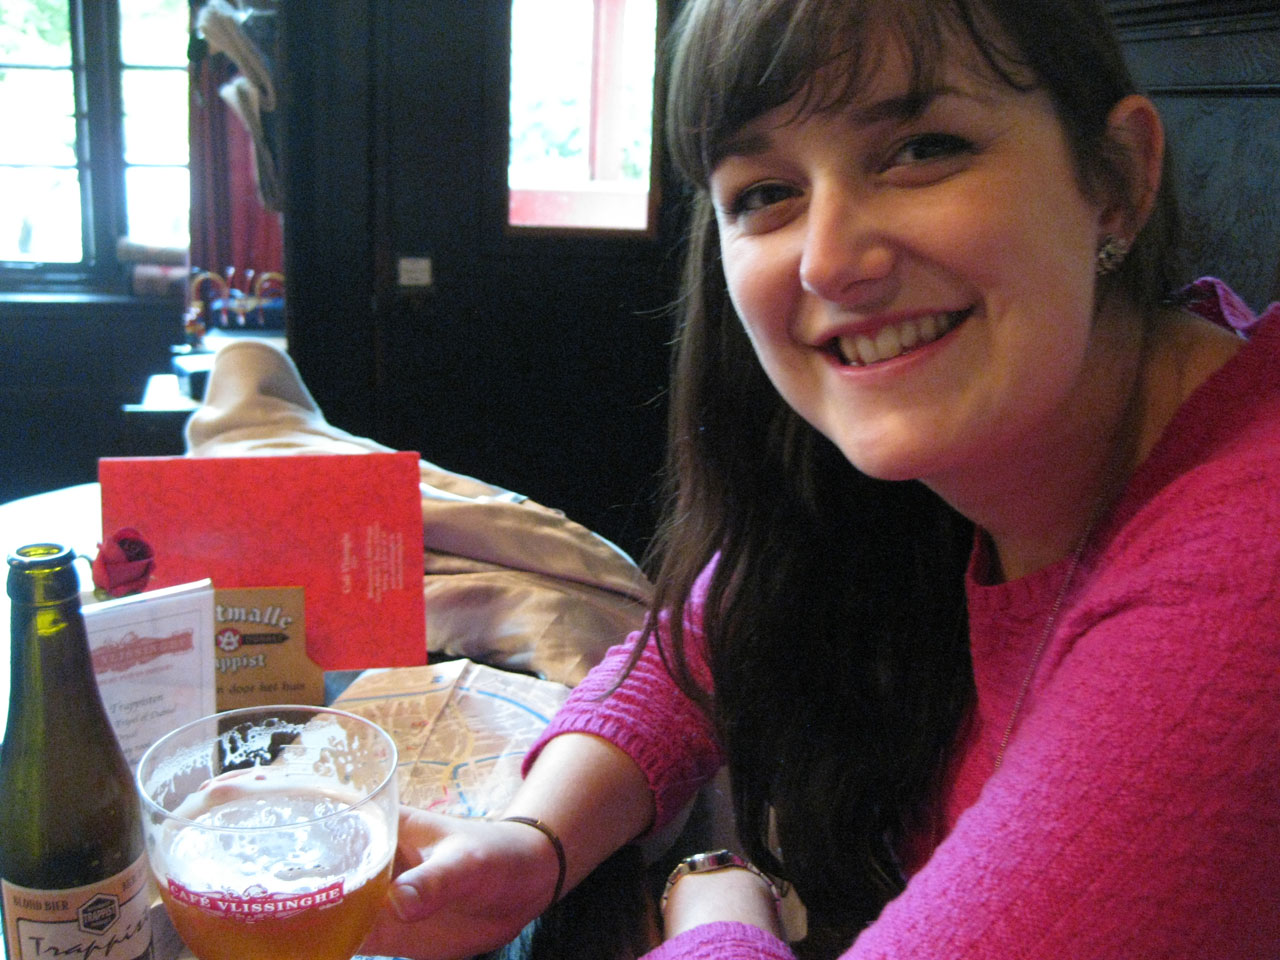 Polly sampling a Trappist beer at Café Vlissingghe, Bruges, Belgium